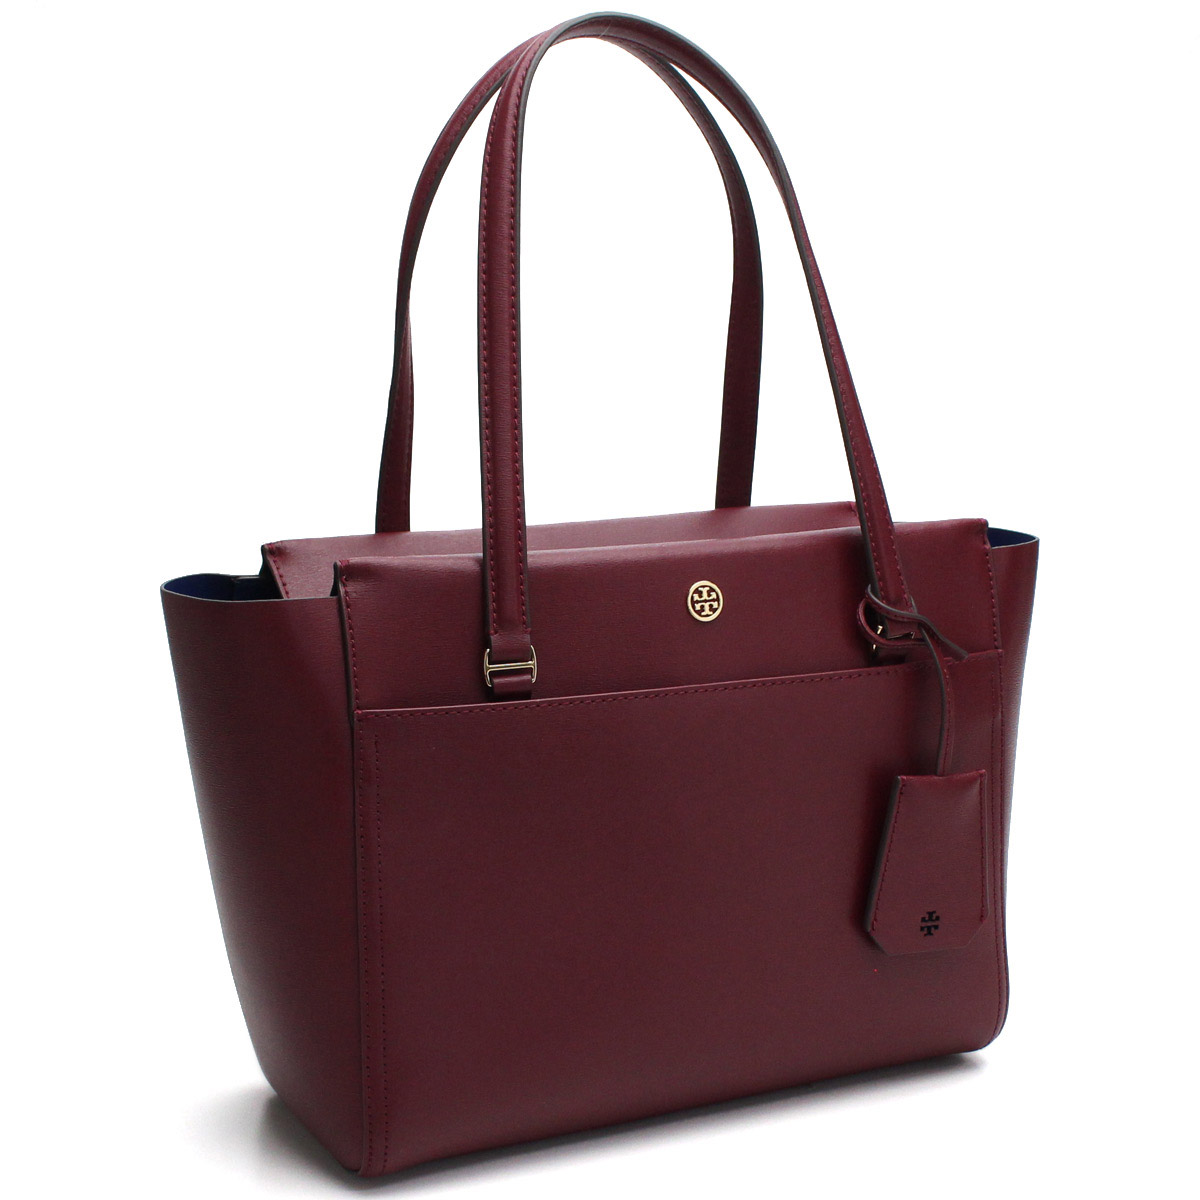 7154b9aaa13 Bighit The total brand wholesale  Tolly Birch (TORY BURCH) PARKER parka Small  tote bag 37744 639 IMPERIAL GARNET MID Bordeaux system